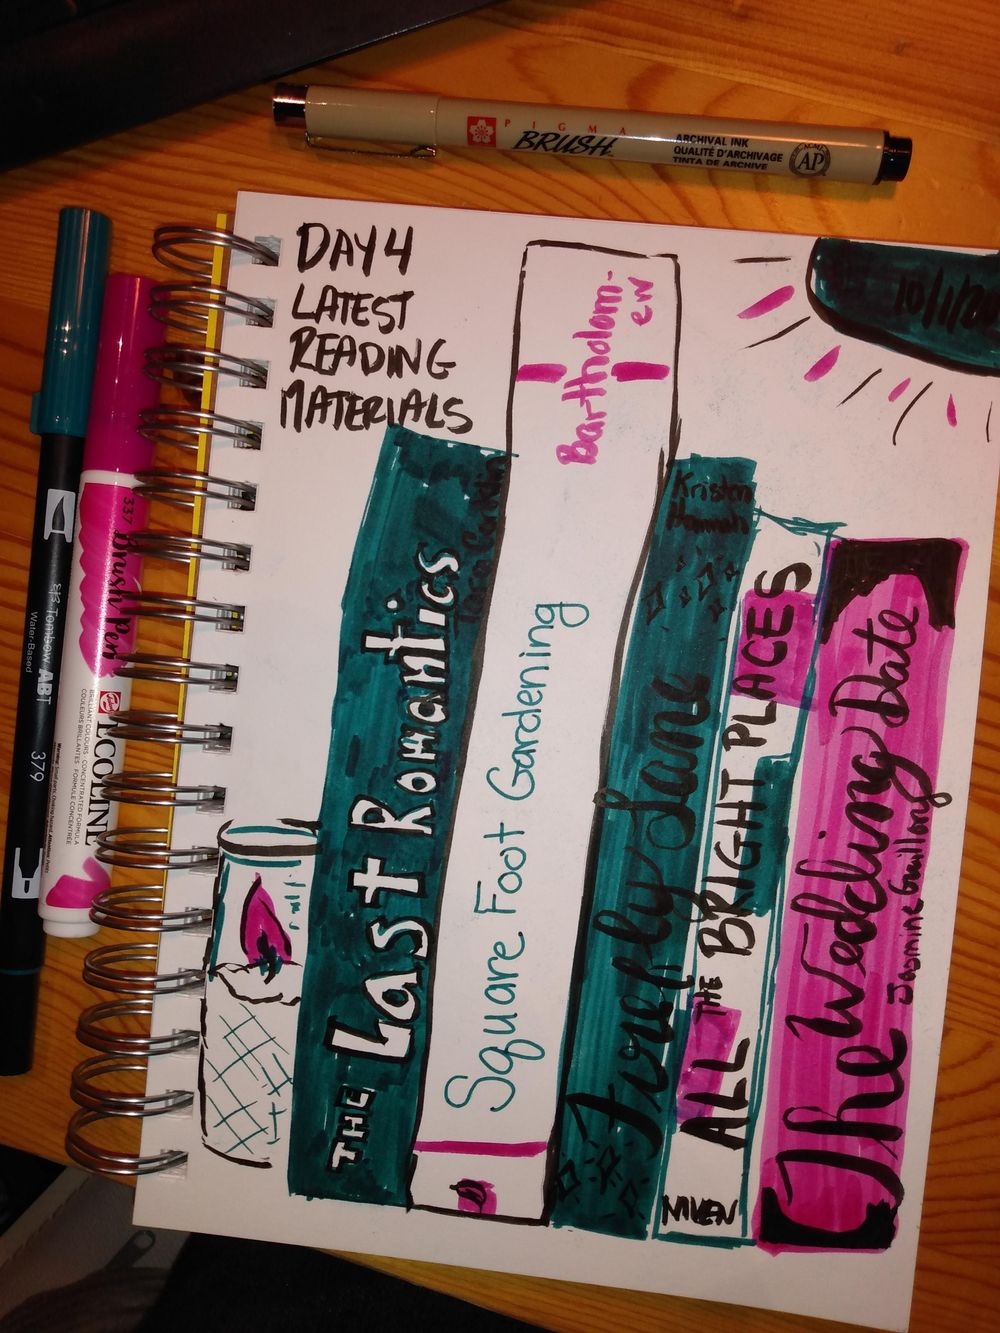 Daily Illustrated Journaling - image 4 - student project